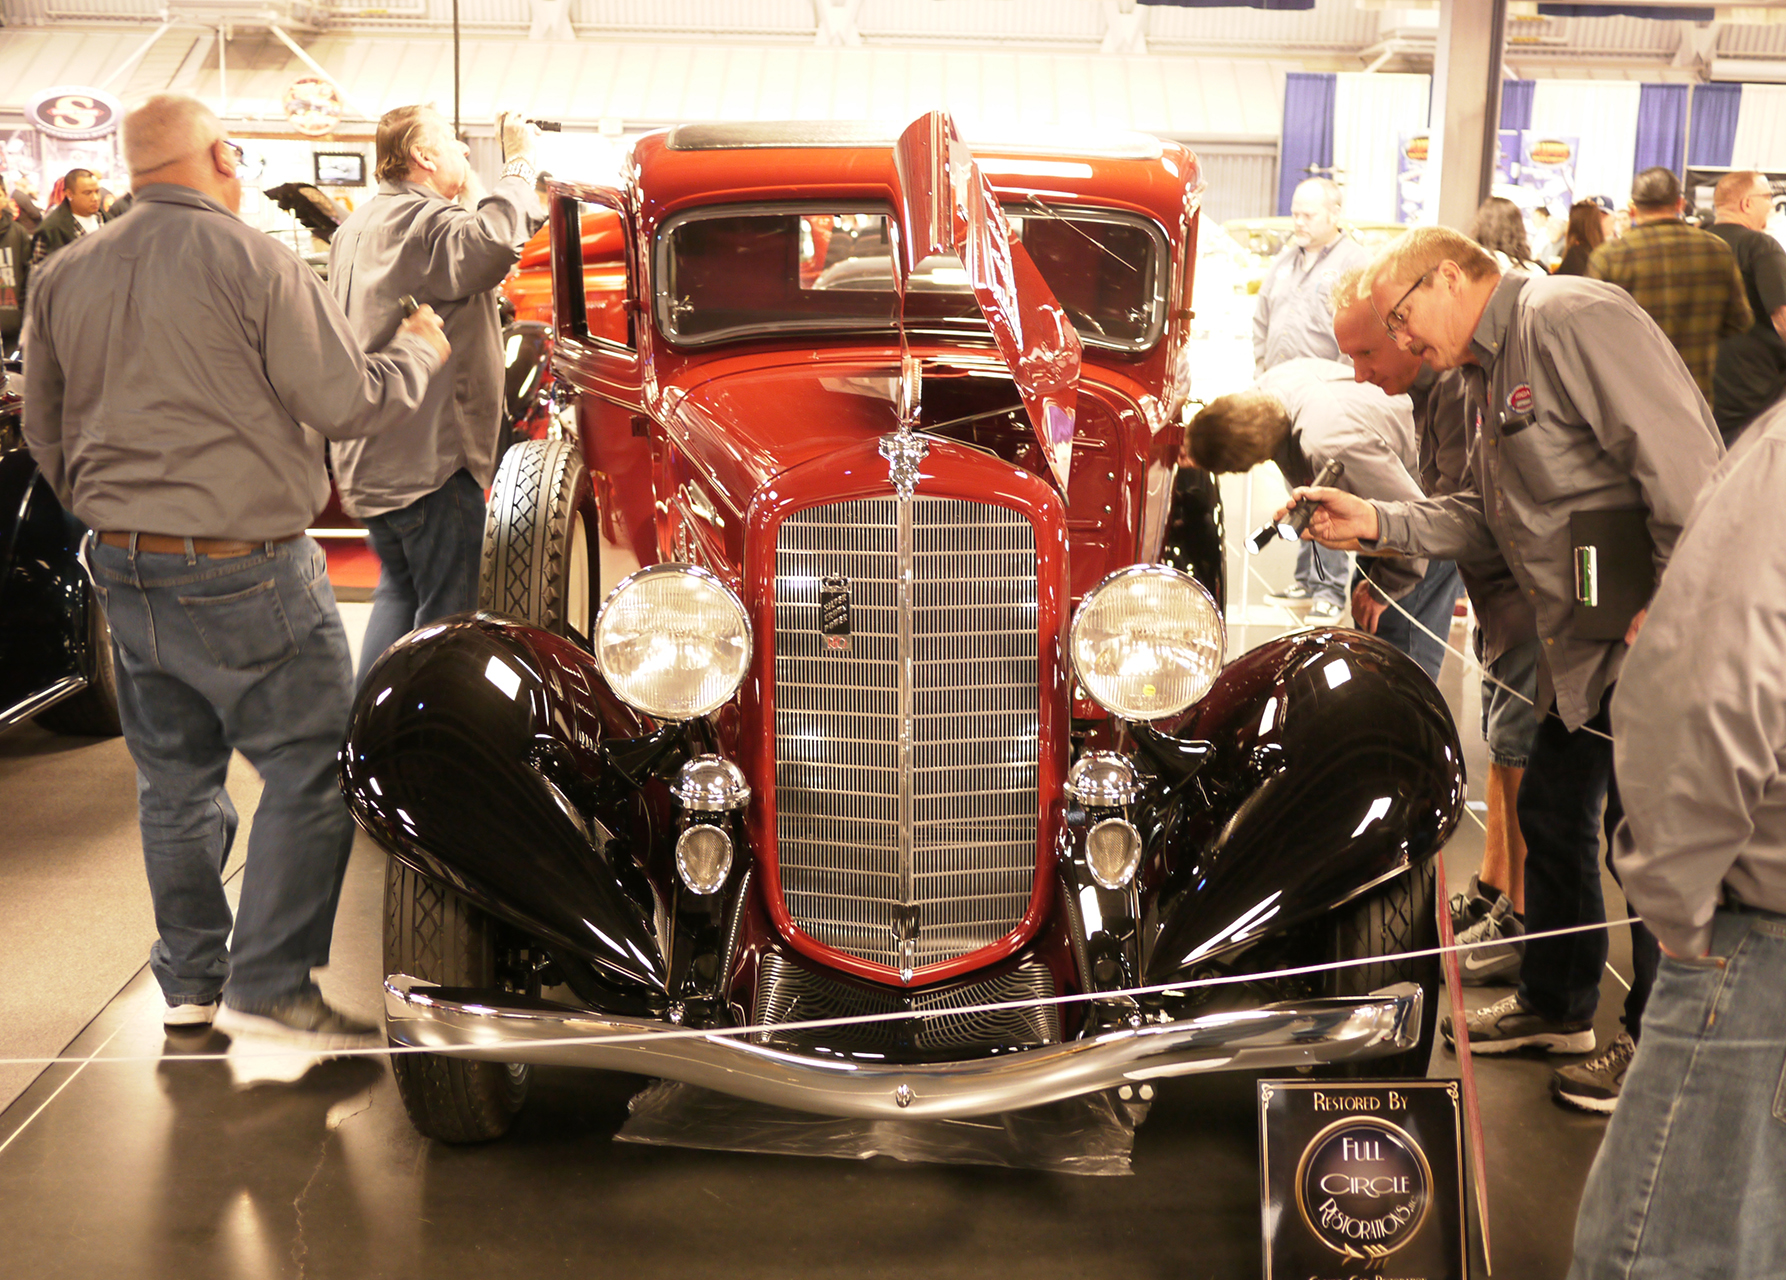 The judging crew gives a REO pickup a thorough going over. That's Ransom E. Olds thank you.